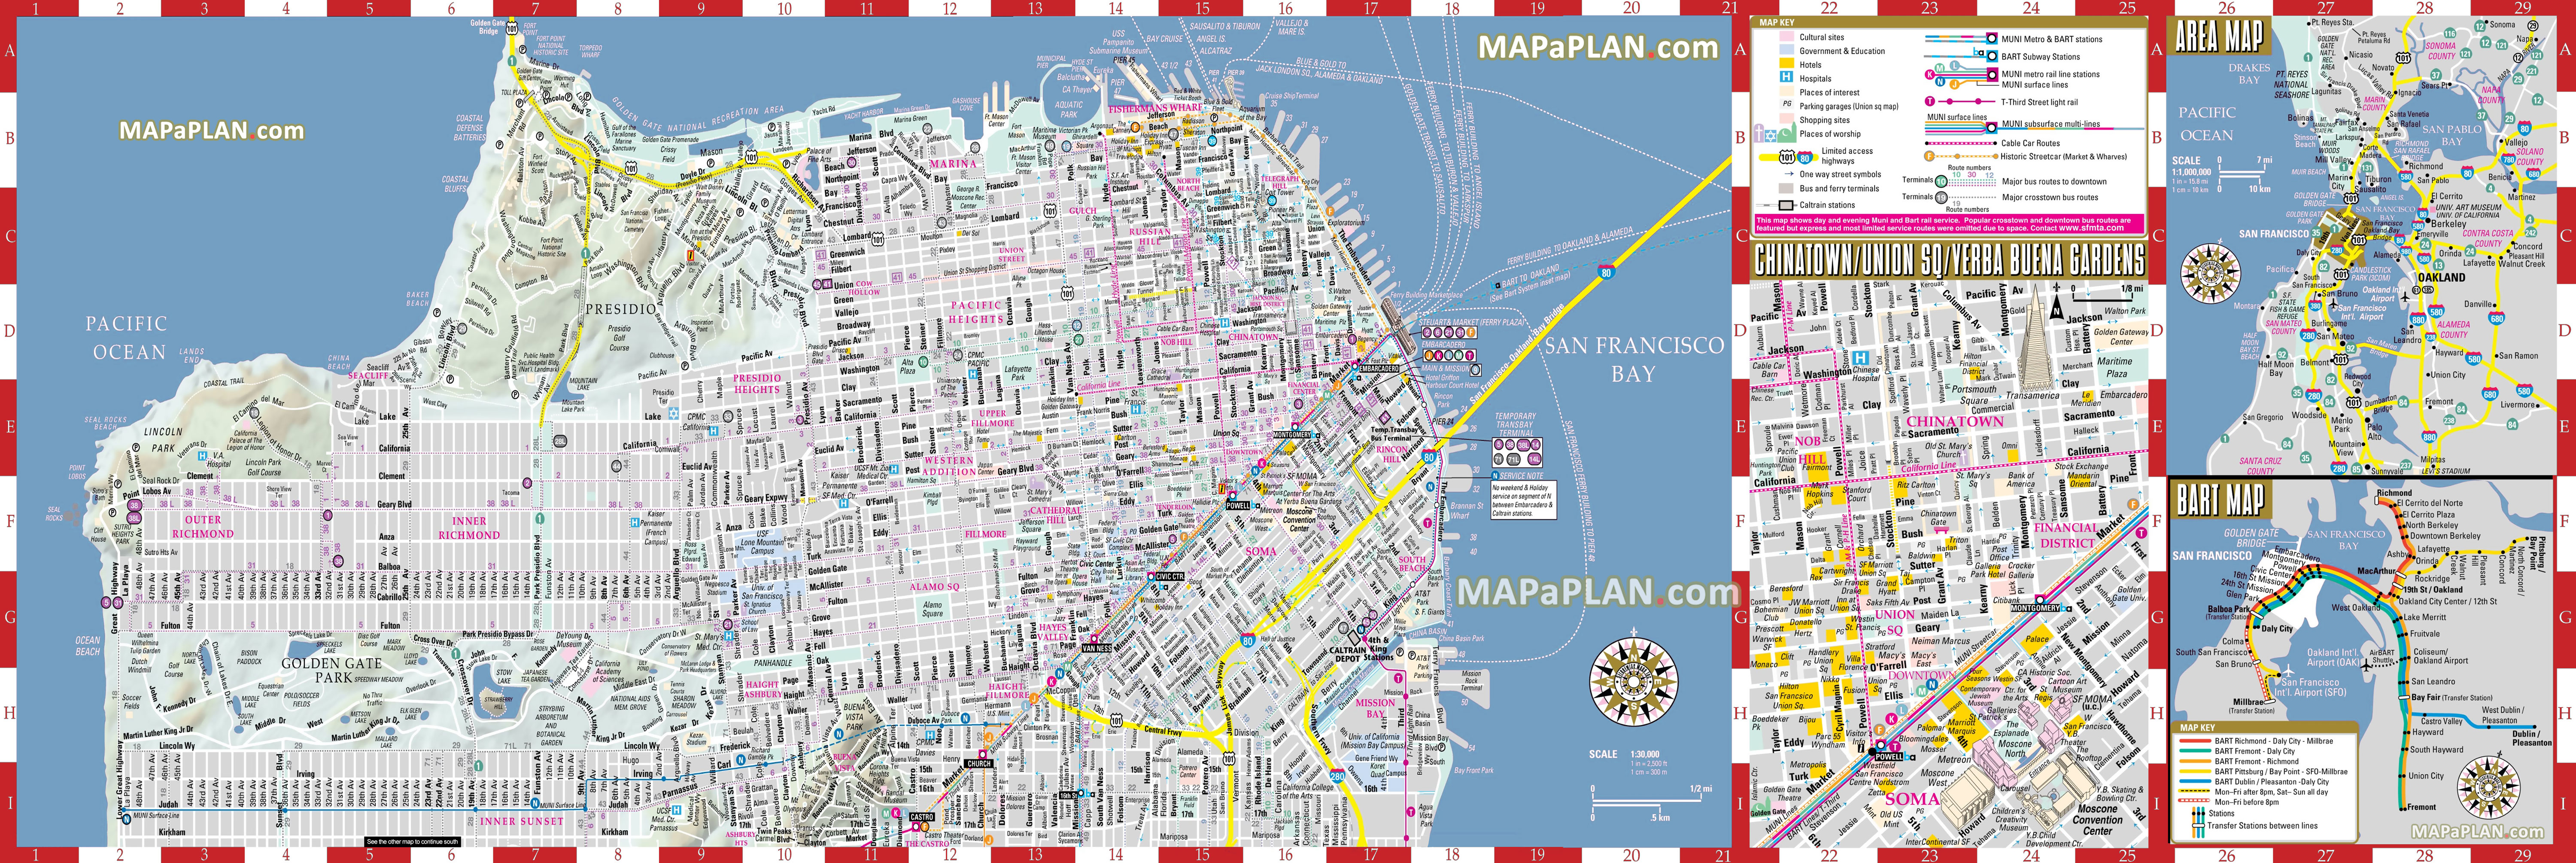 San Francisco Maps Top Tourist Attractions Free Printable City Street Map